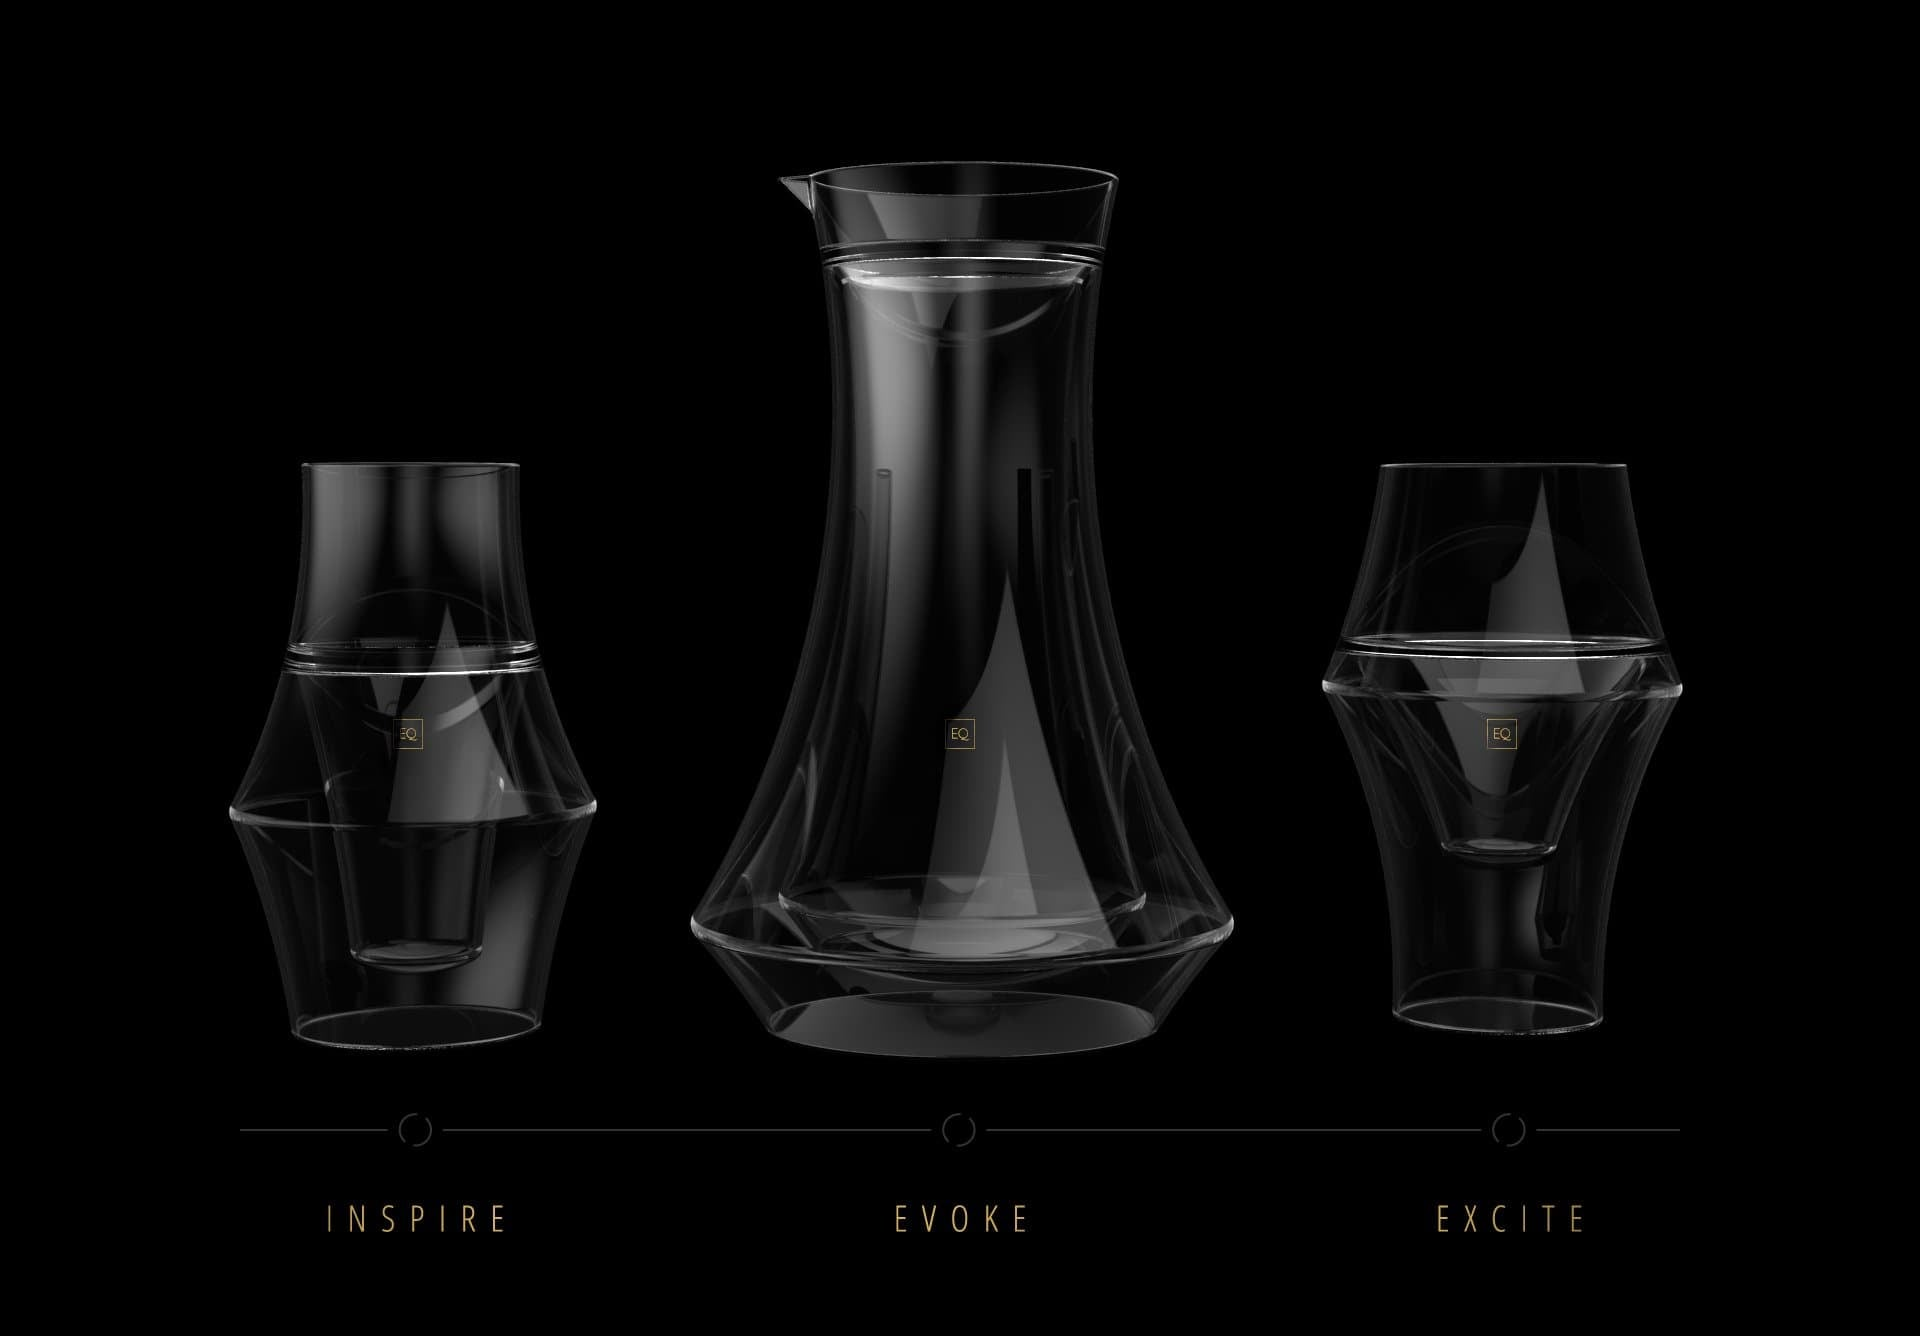 Excite Glass, Inspire Glass, and Evoke Carafe